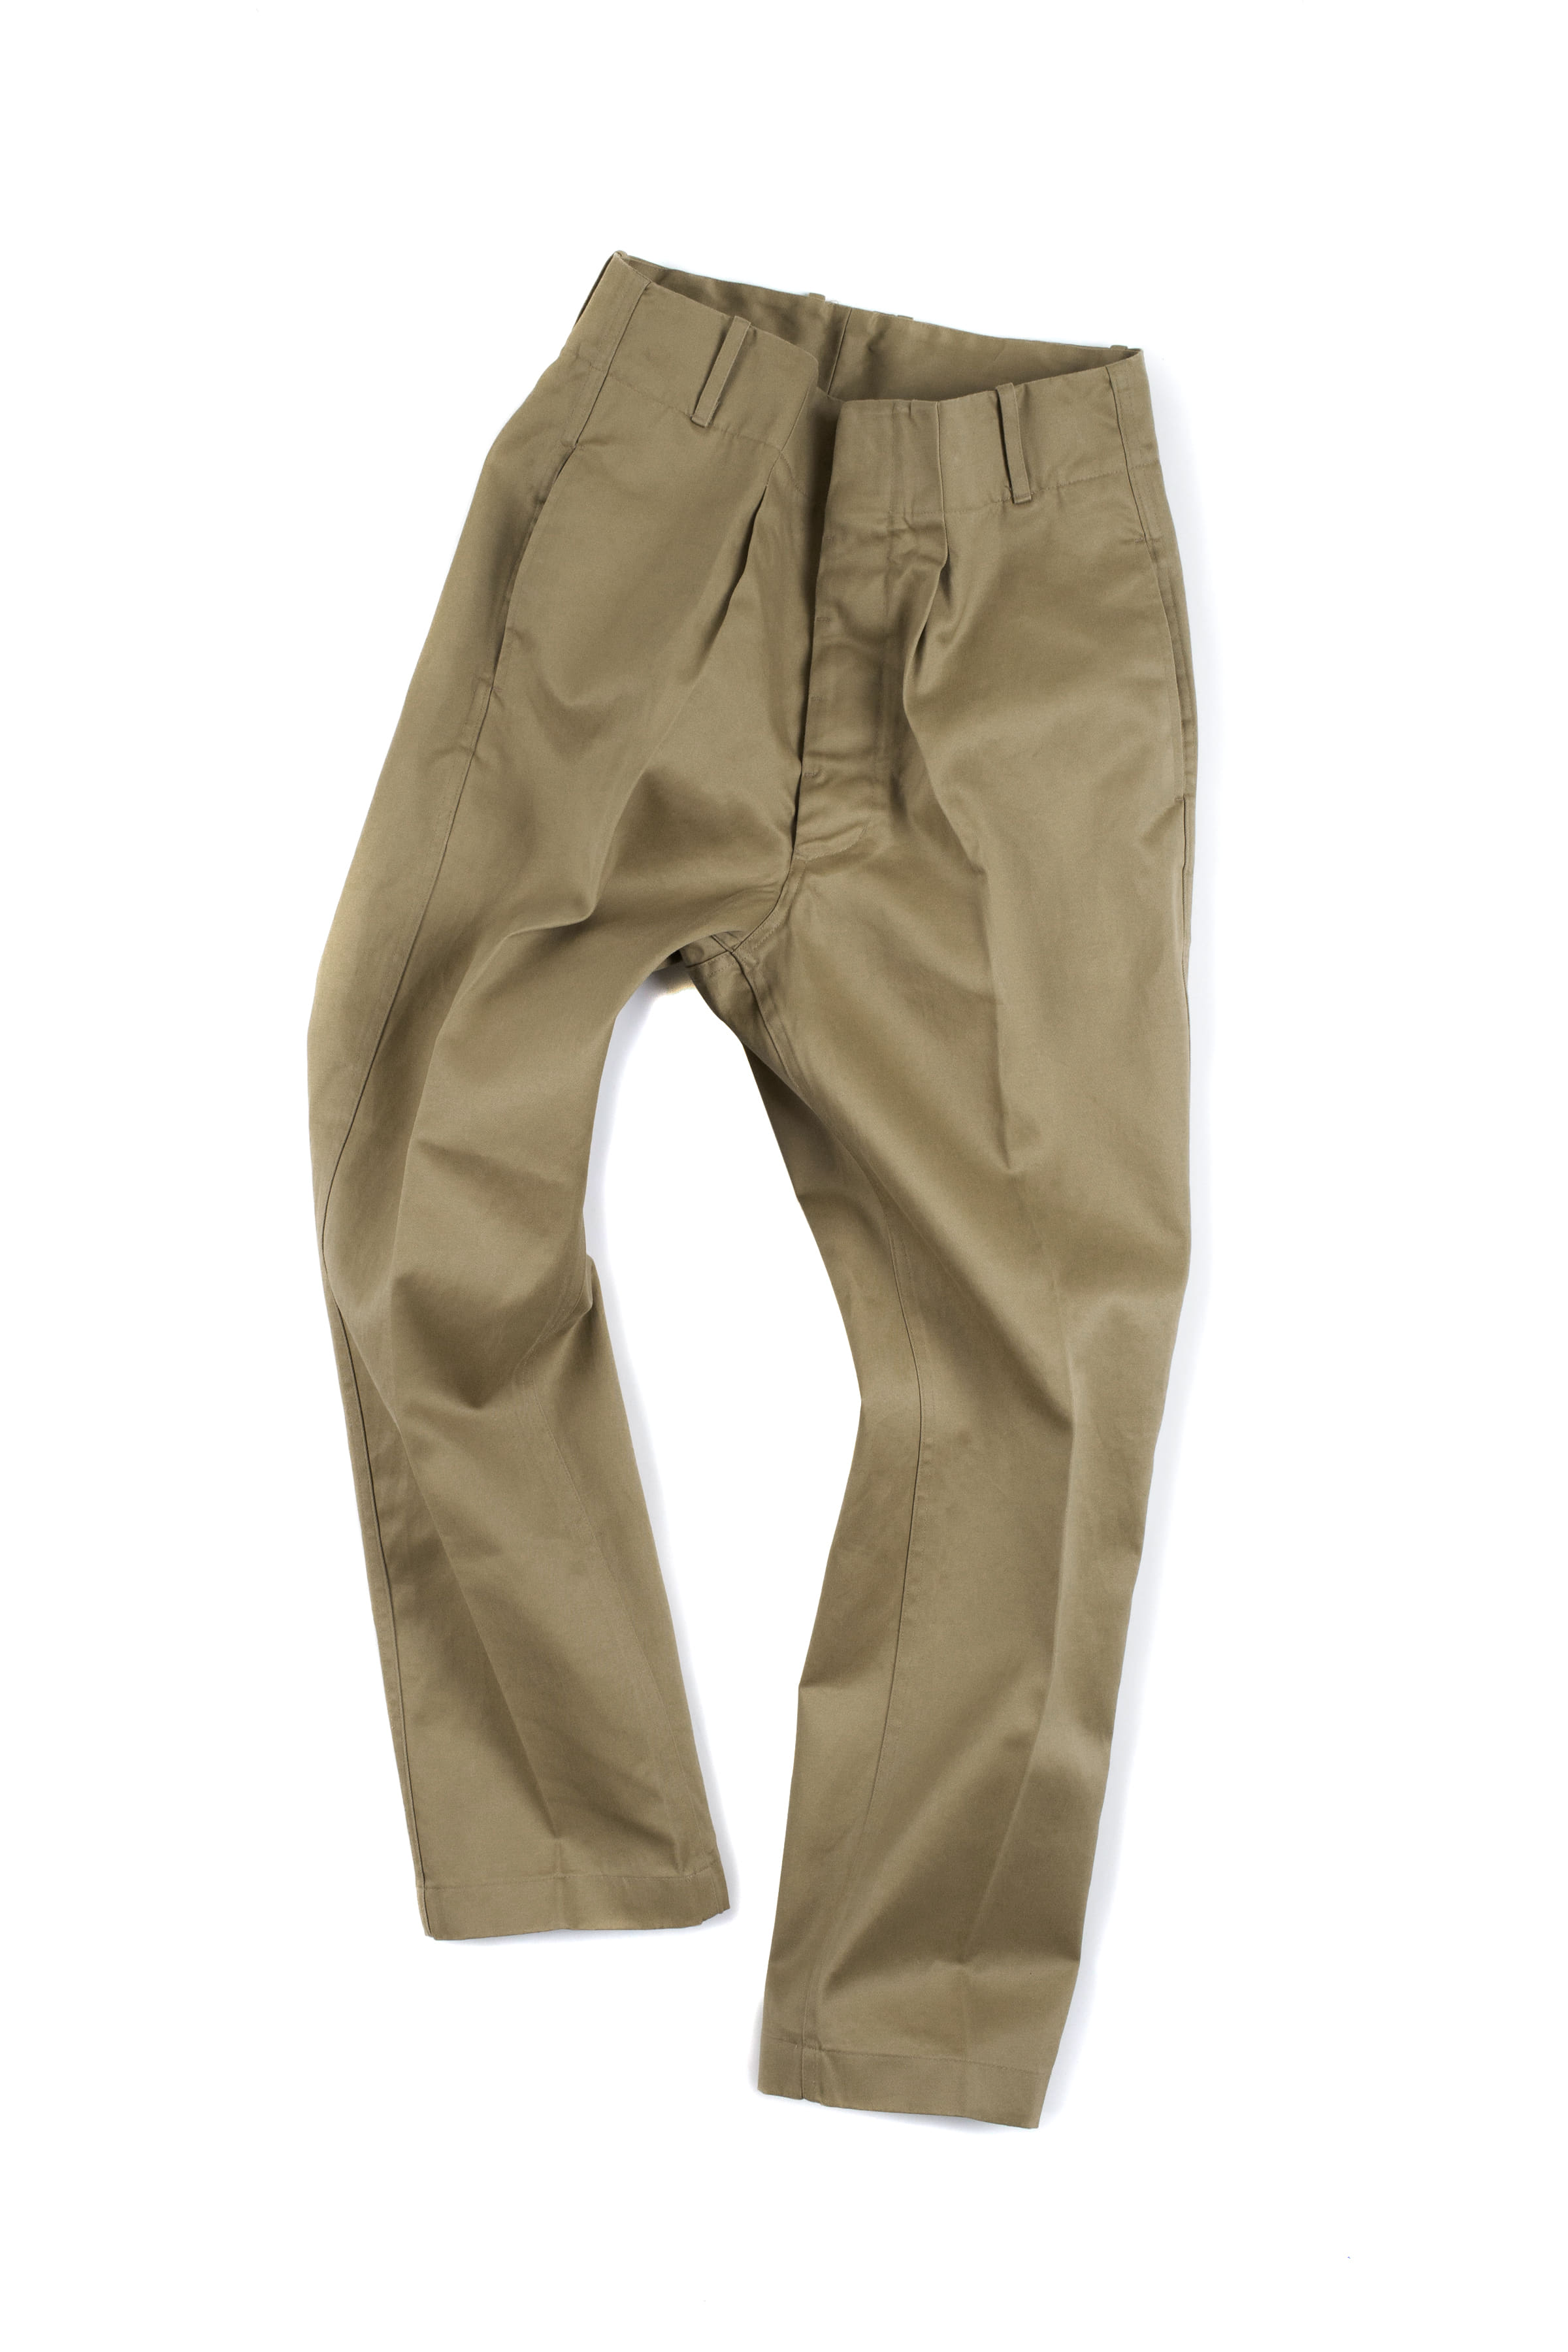 Document : High Waist Cotton Trousers (Beige)